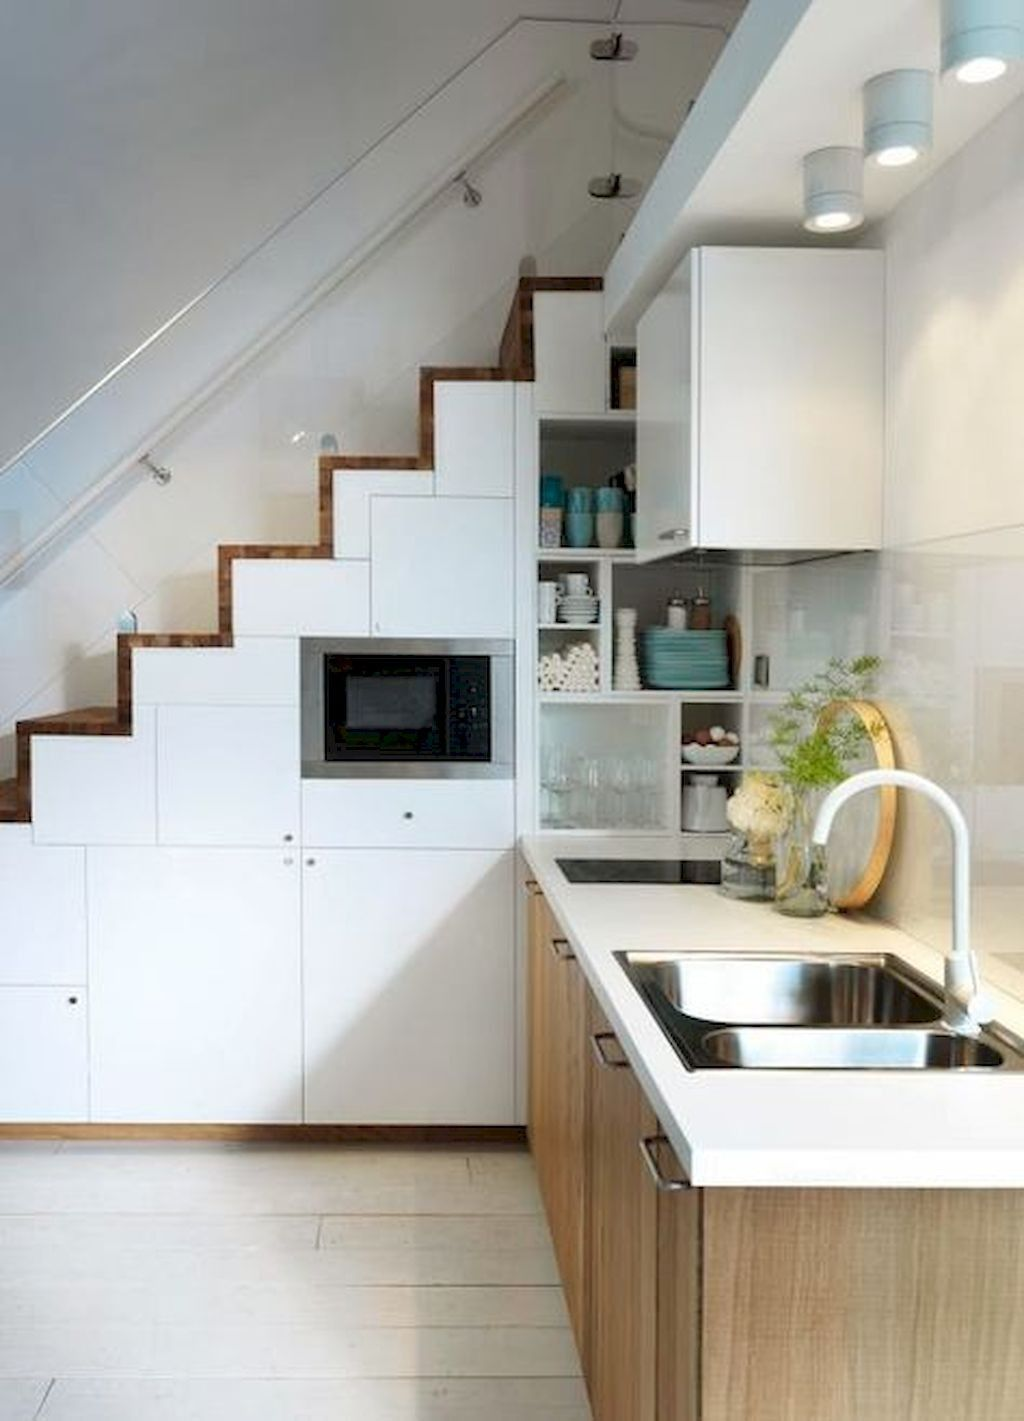 79 Awesome Loft Stair With Space Saving Ideas Kitchen Remodel Small Kitchen Under Stairs Small Modern Kitchens